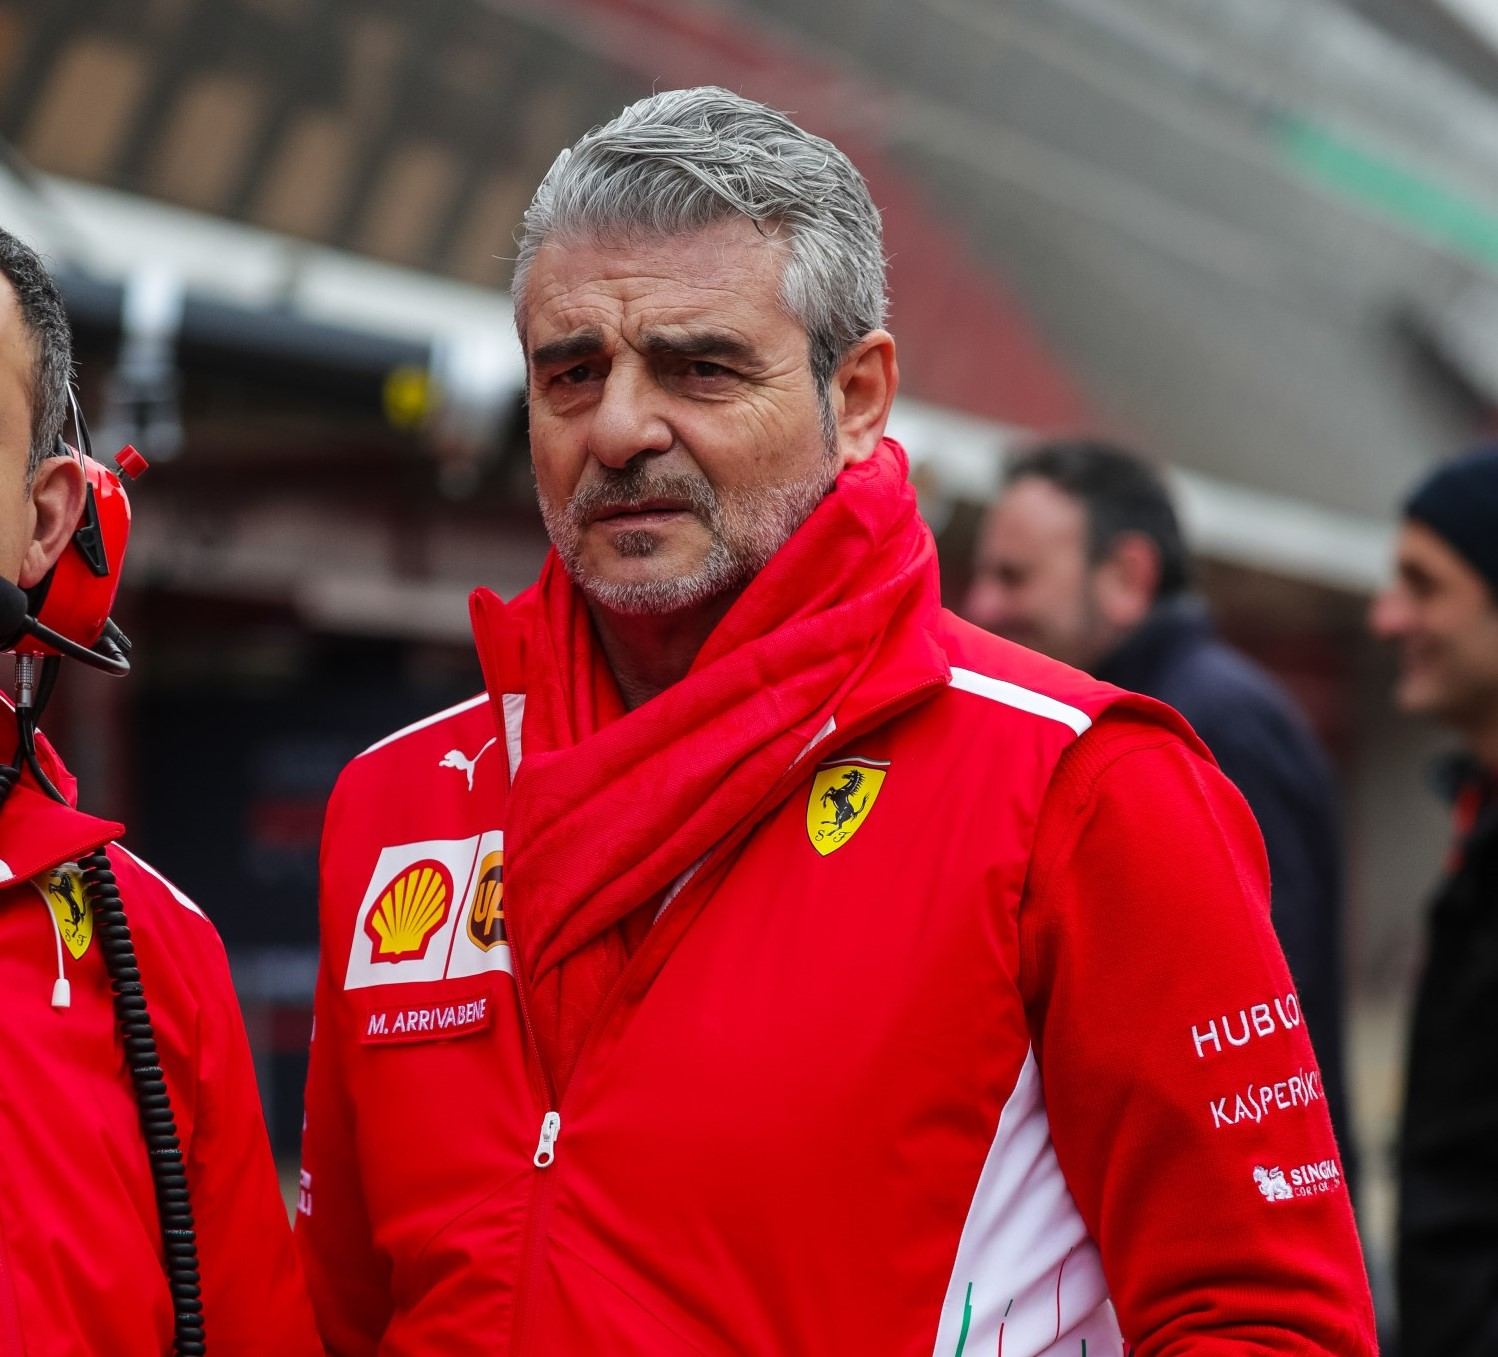 Arrivabene and Ferrari collects the big payout